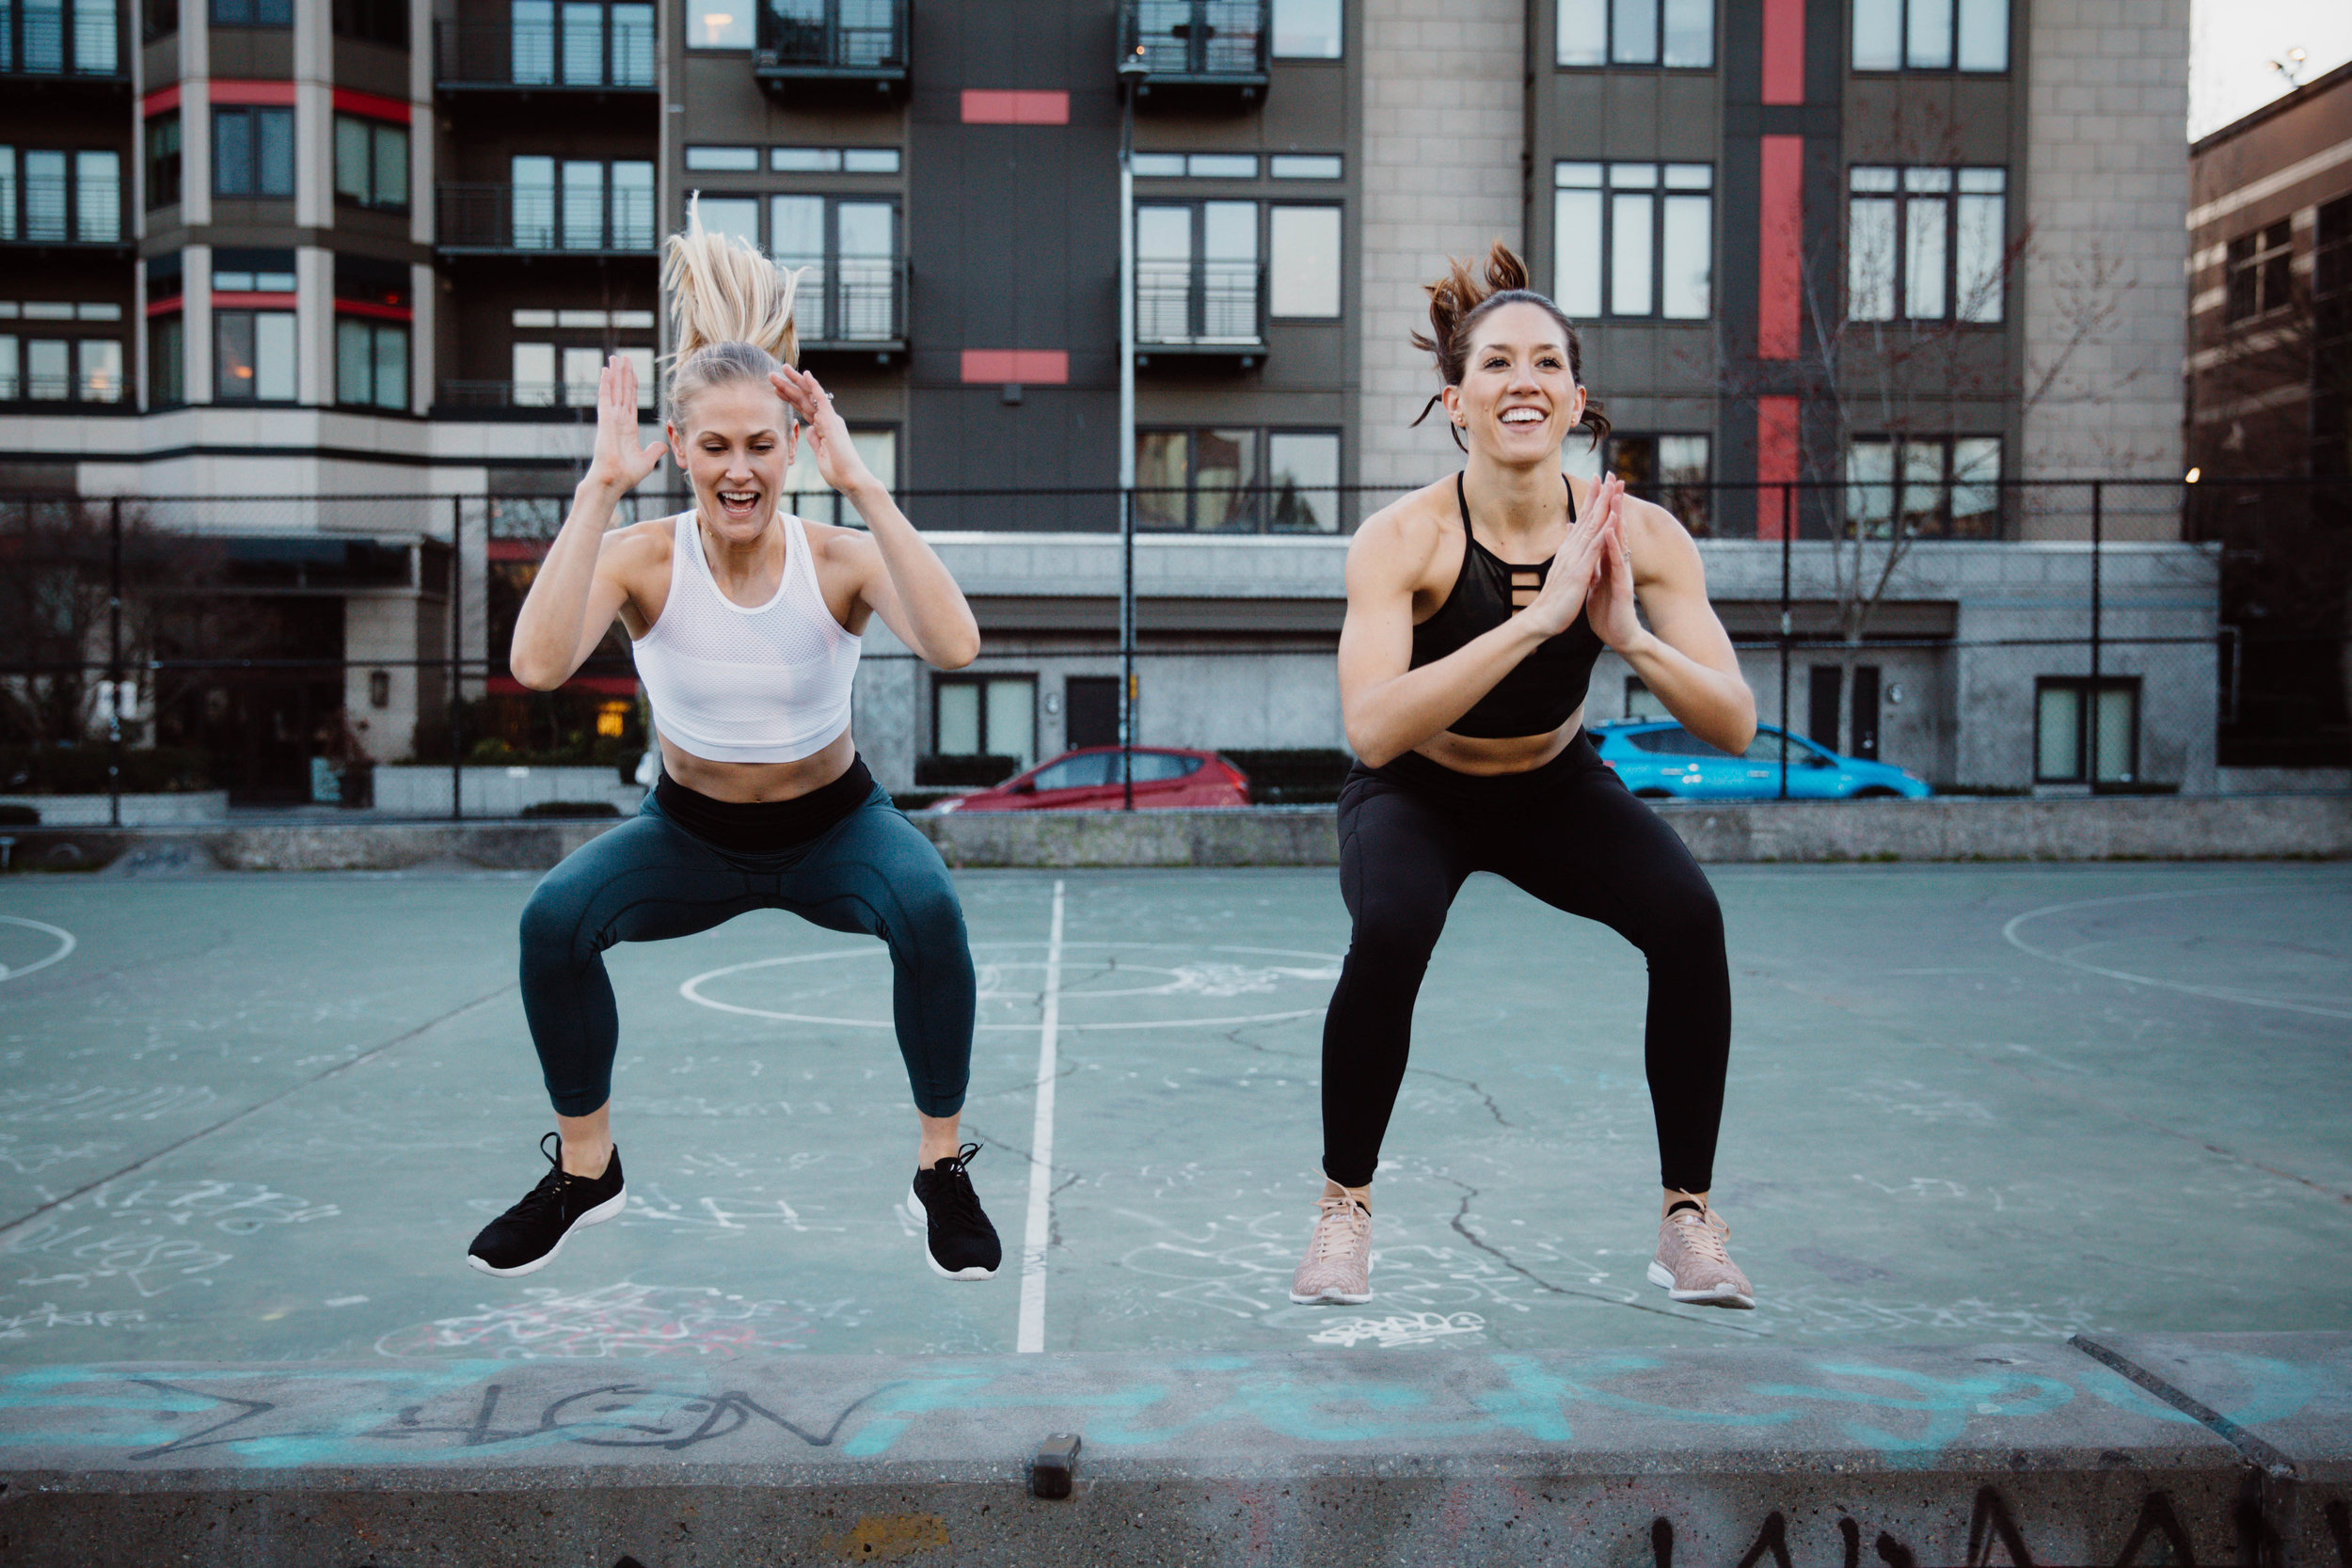 Ives and Christina  - These girls know what does a body good. I loved this shoot because of the energy and chemistry they have together, and the common passion they share. Fitness. I was an athlete my entire life until the last few years. It's not that I don't work out anymore, it's just after multiple surgeries I just ain't what I once was. Y'all feel me? Back in the day (I'm talking like I'm 80) my favorite thing was to work out with people. Running buddies were my absolute favorite. Not only did they keep me accountable, but those people ended up being my best friends at the time. It's amazing how much life you share when you're running 15 miles a week together. I can tell Christina and Ives are the same. They push each other, they laugh a ton and their perfect bodies are a result of their incredible dedication to fitness. I'm not jealous at all.